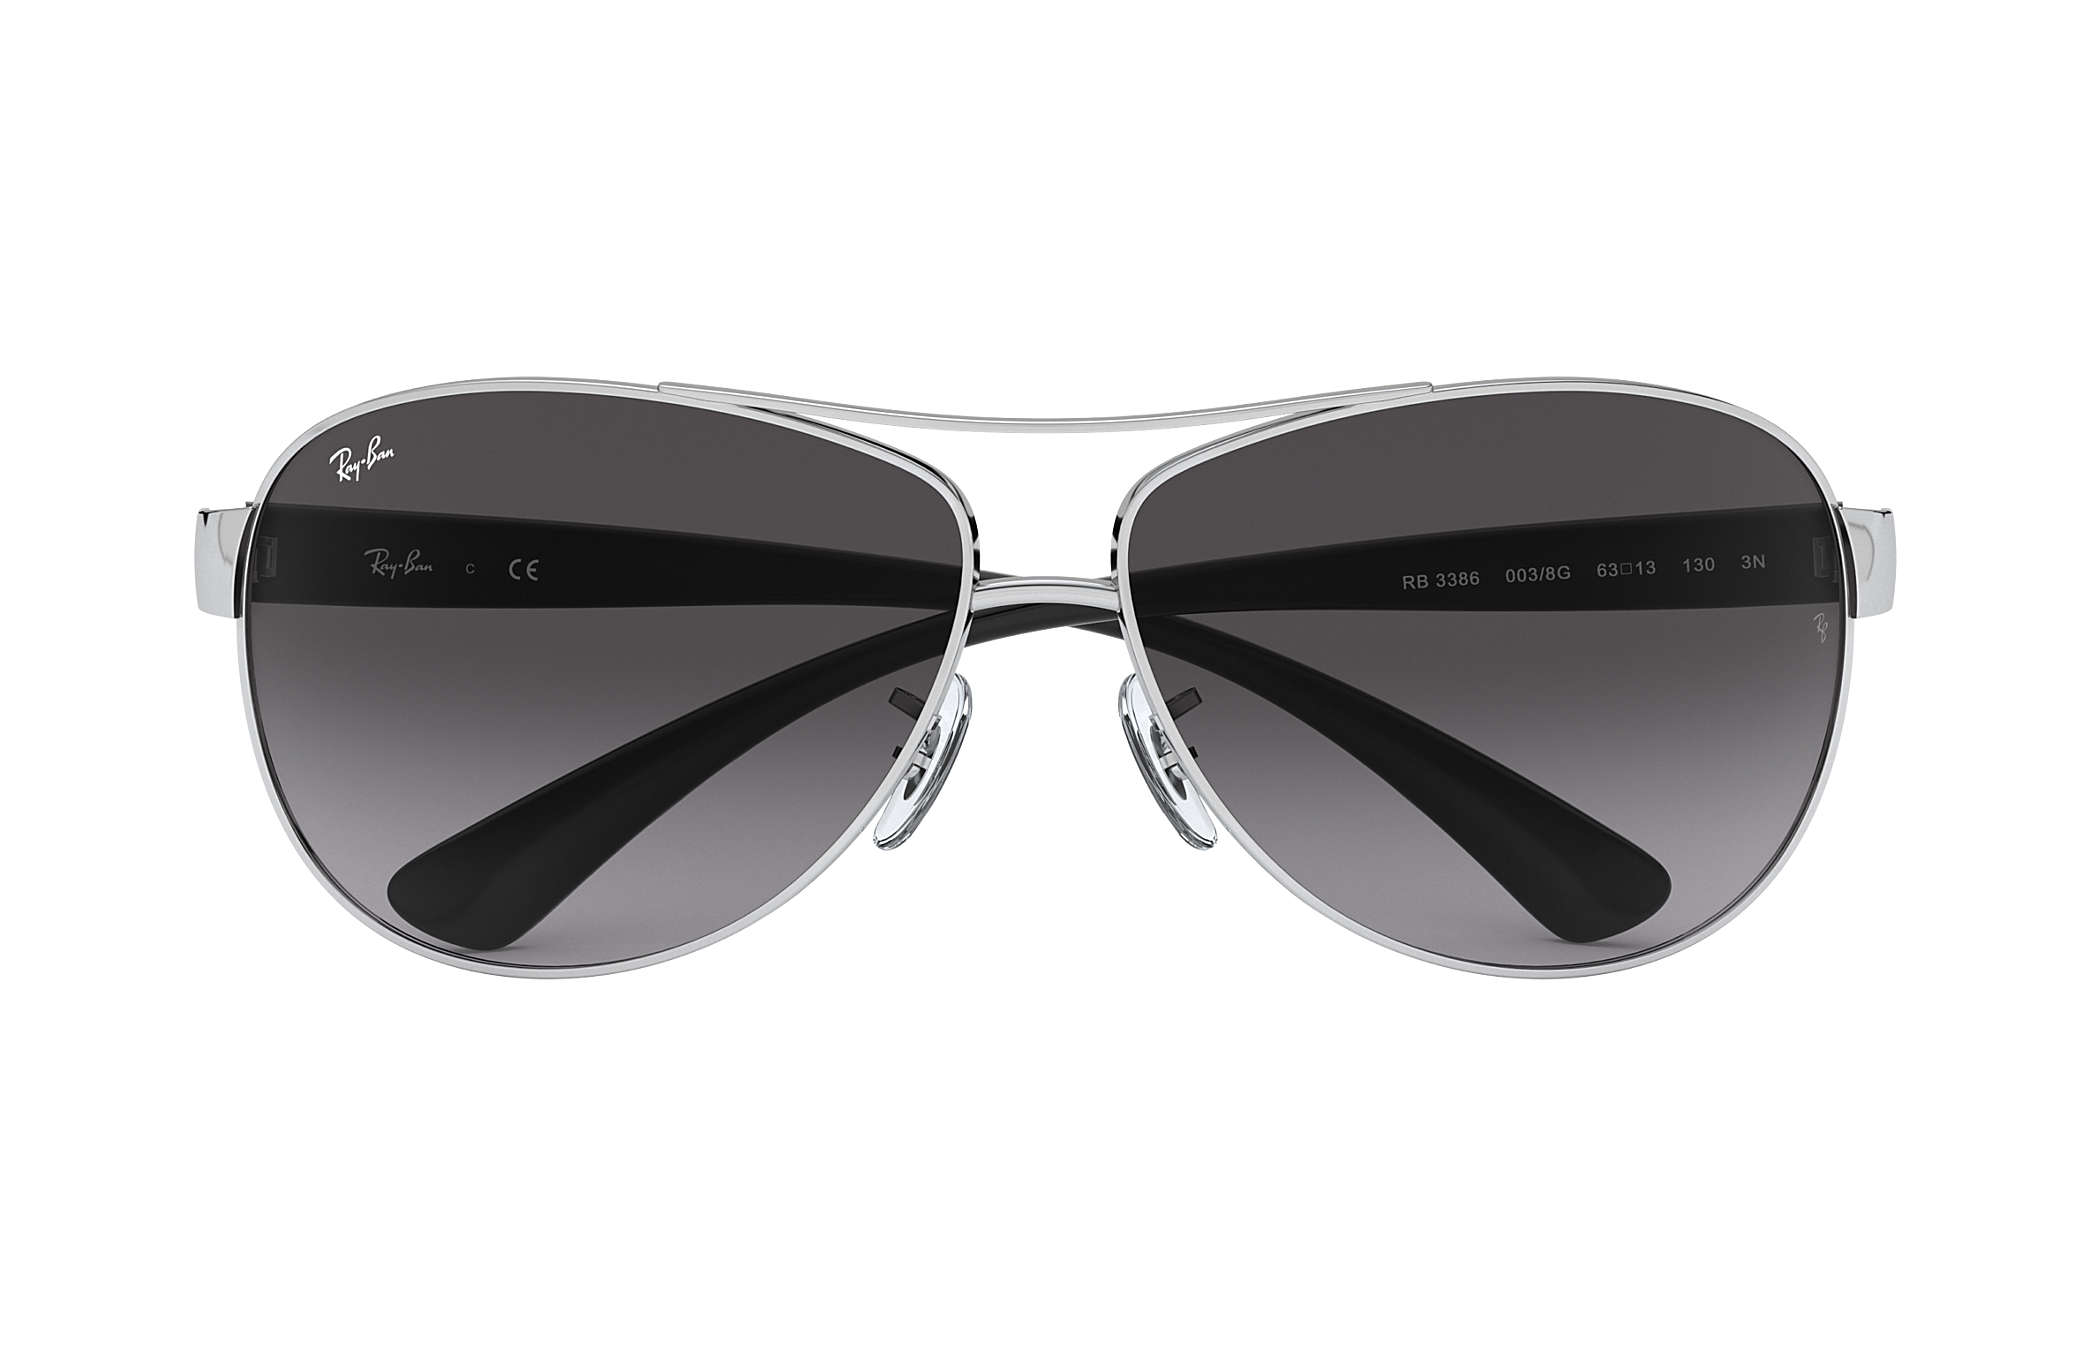 eff1f13ee8 Ray-Ban RB3386 Silver - Metal - Grey Lenses - 0RB3386003/8G63 | Ray ...